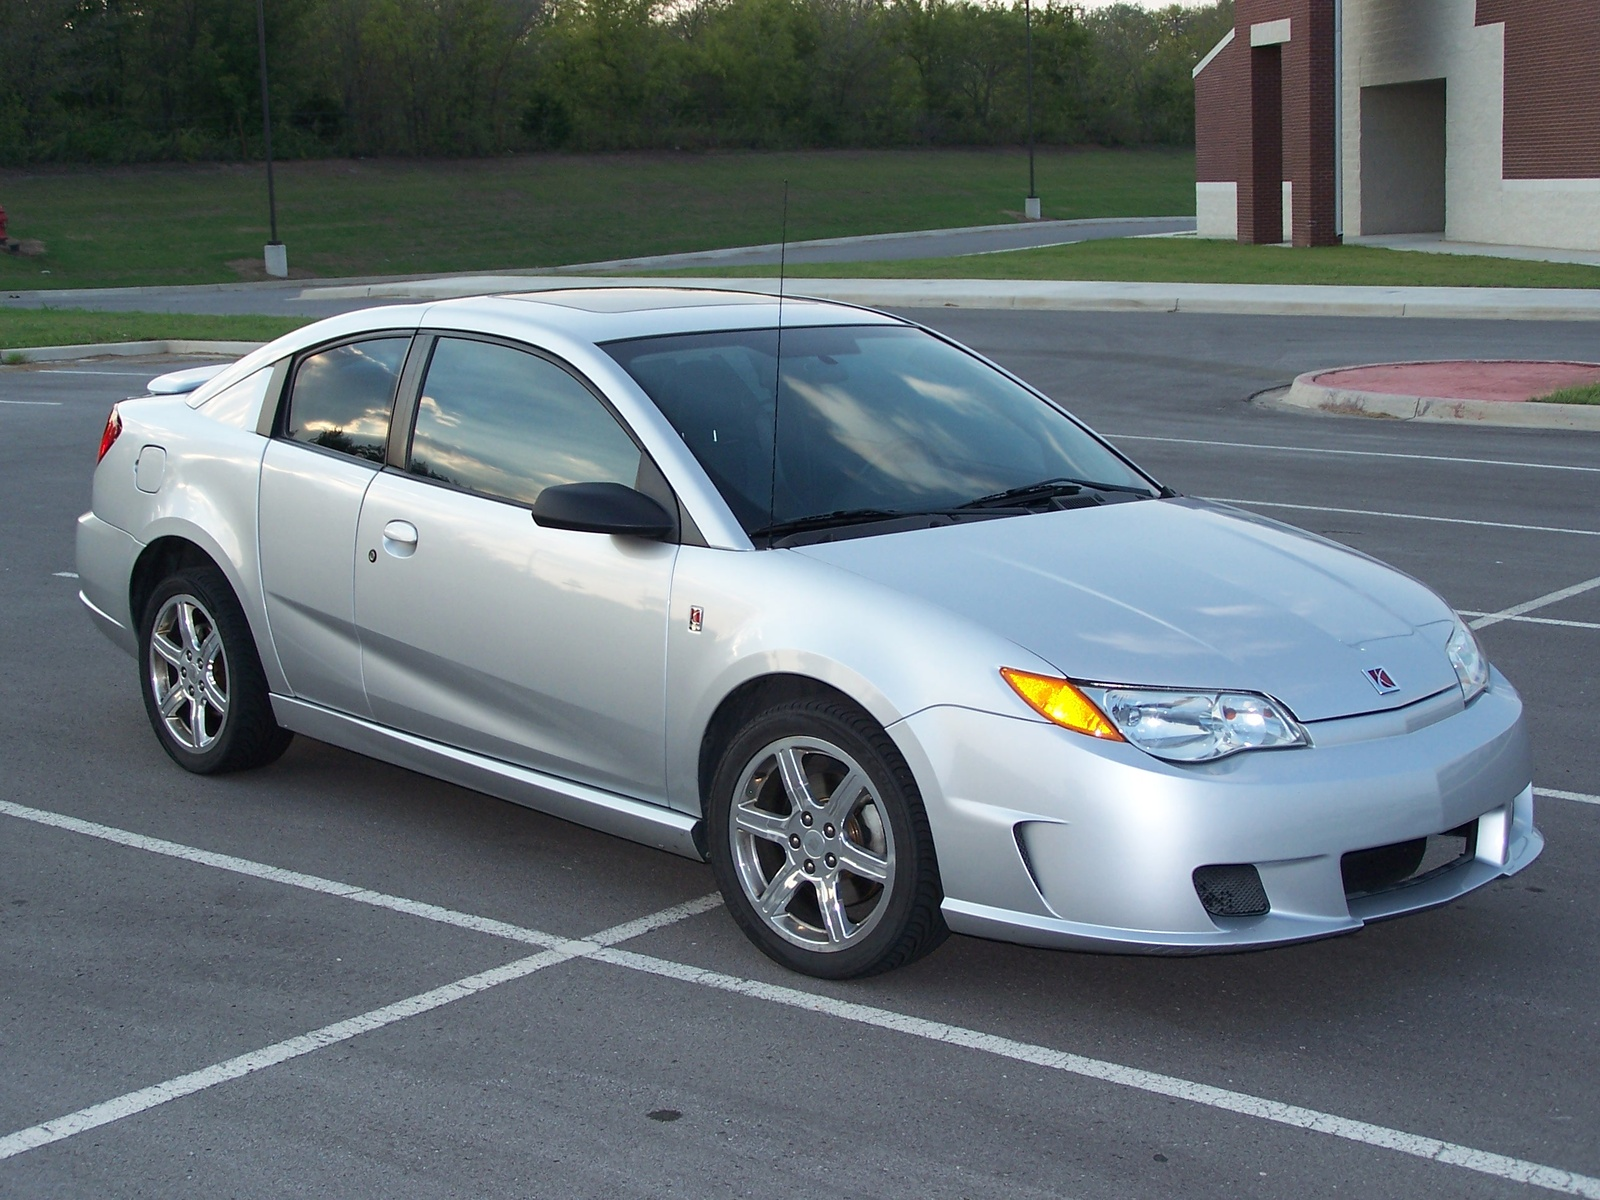 100 ideas saturn ion 2004 coupe on evadete com diagram 100 ideas saturn ion 2004 coupe on evadete com diagram 2002 saturn ion coupe images hd vanachro Images